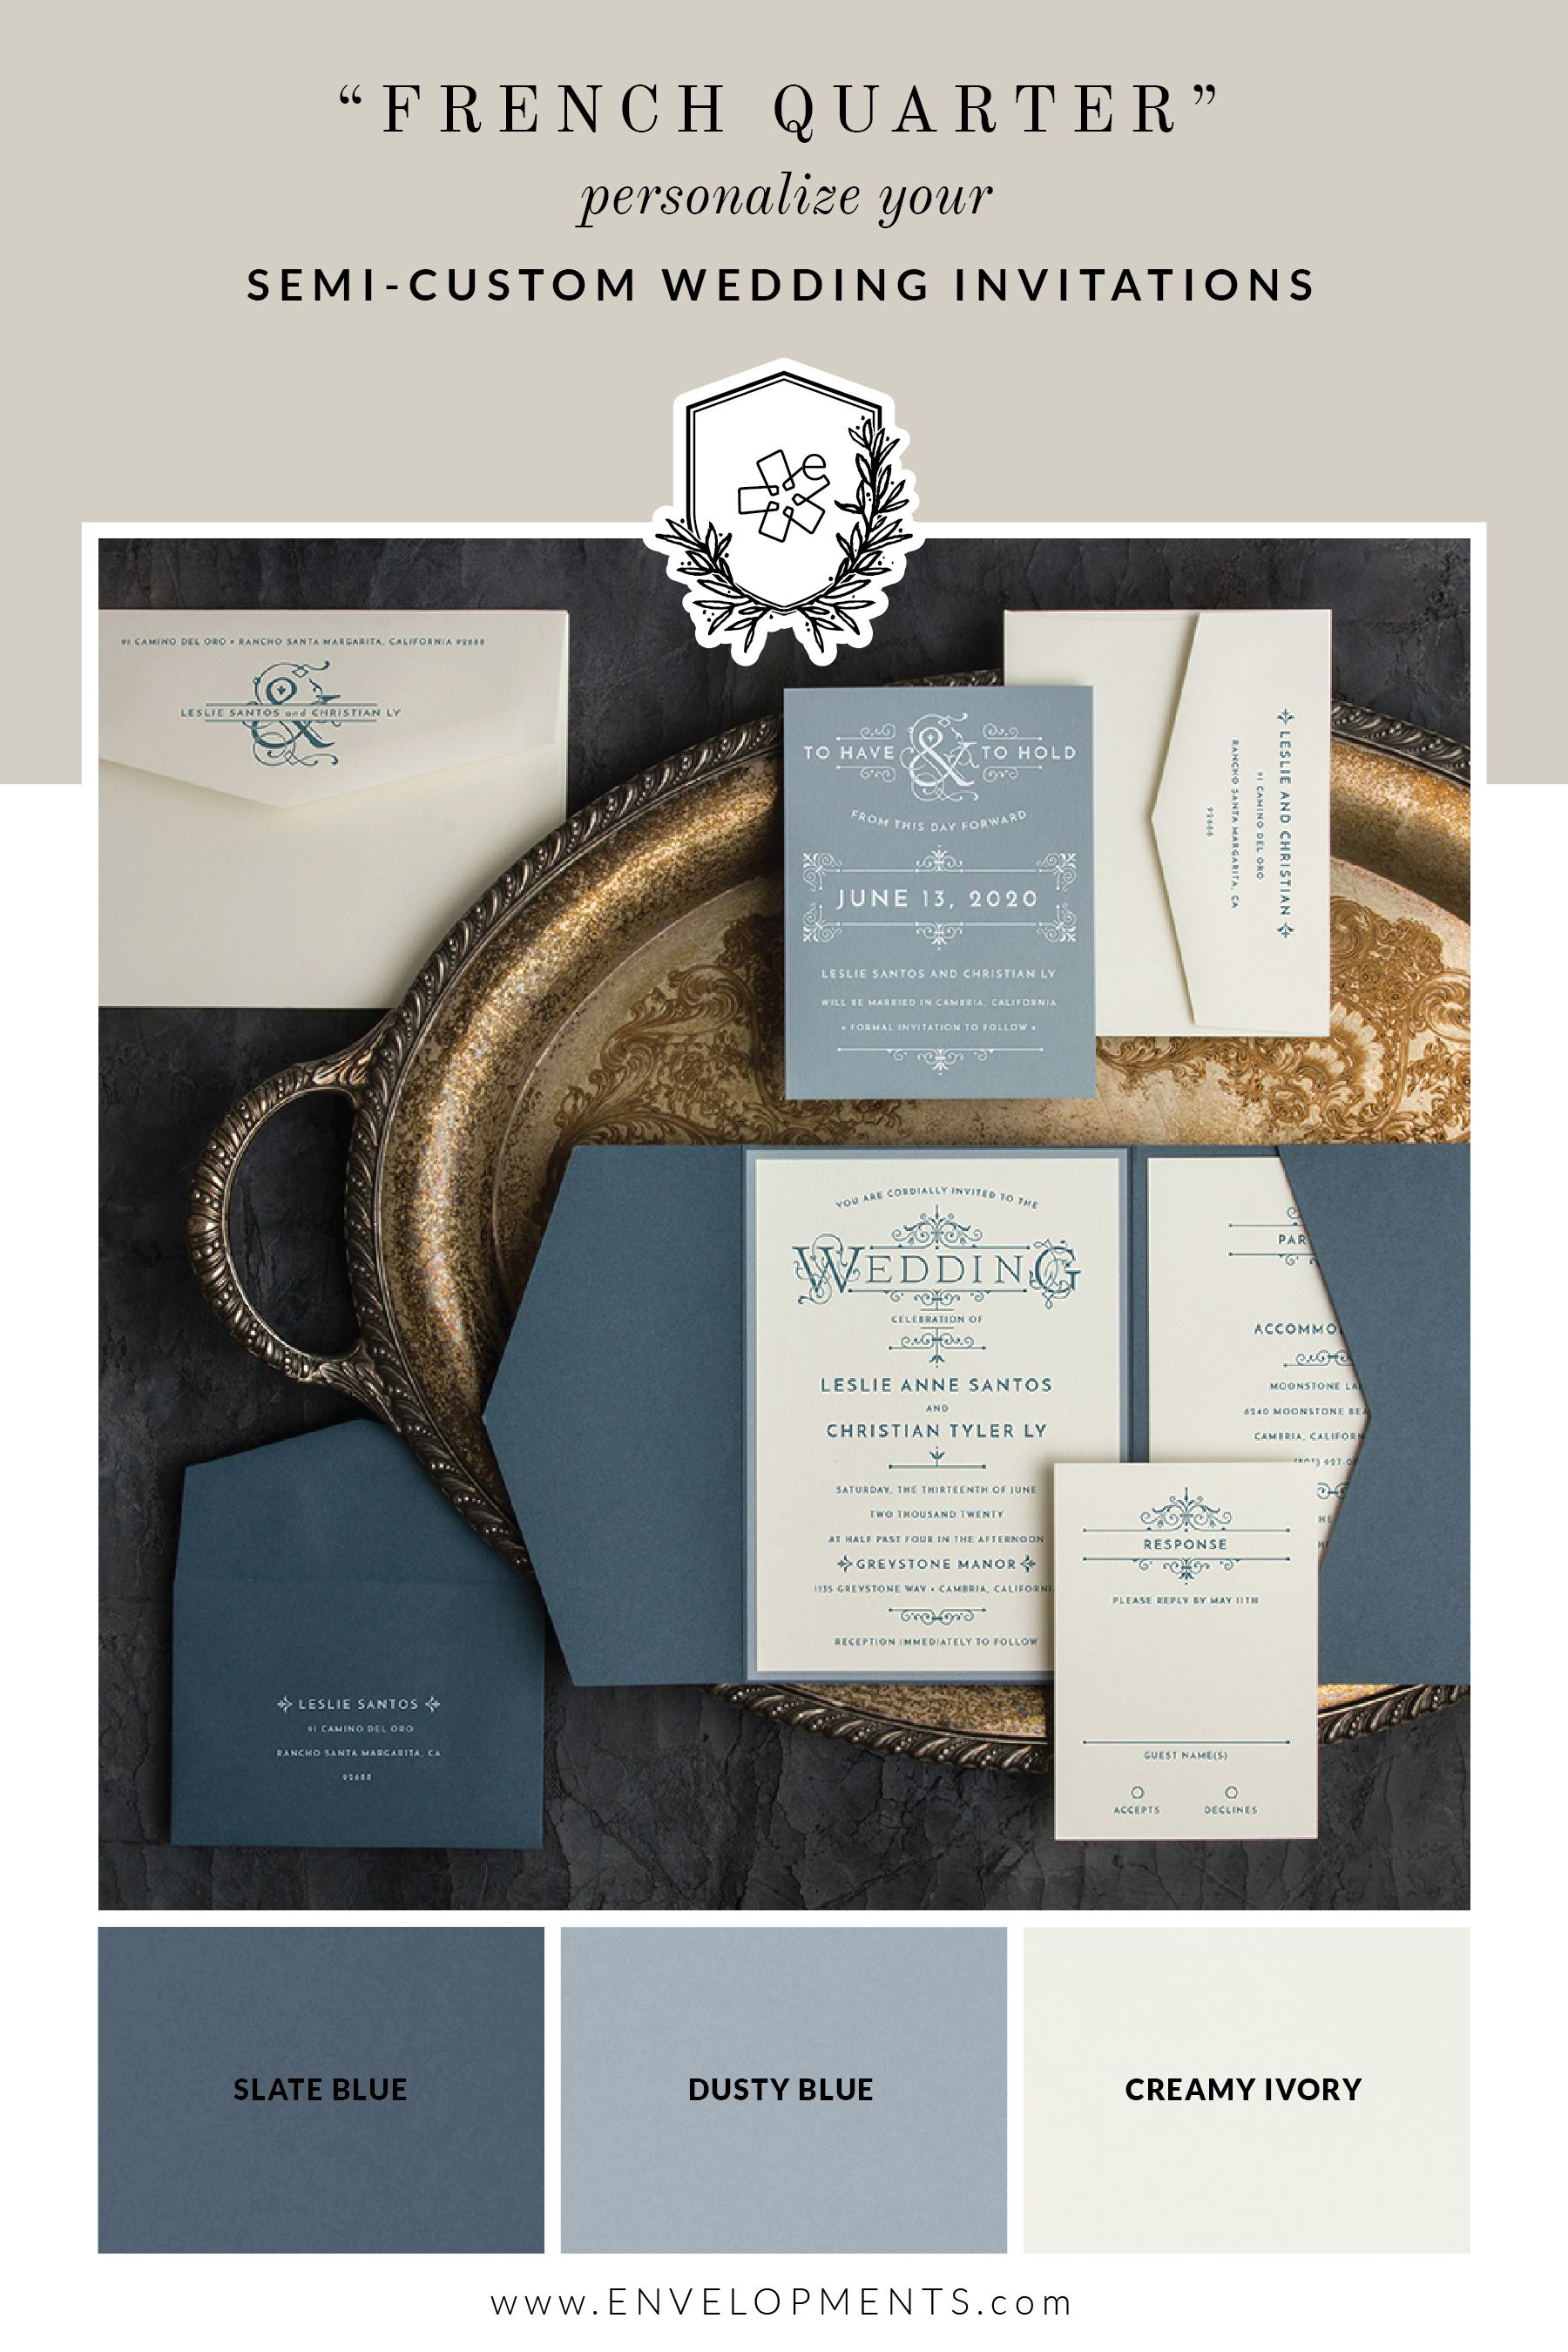 Personalize your wedding invitation with your unique color